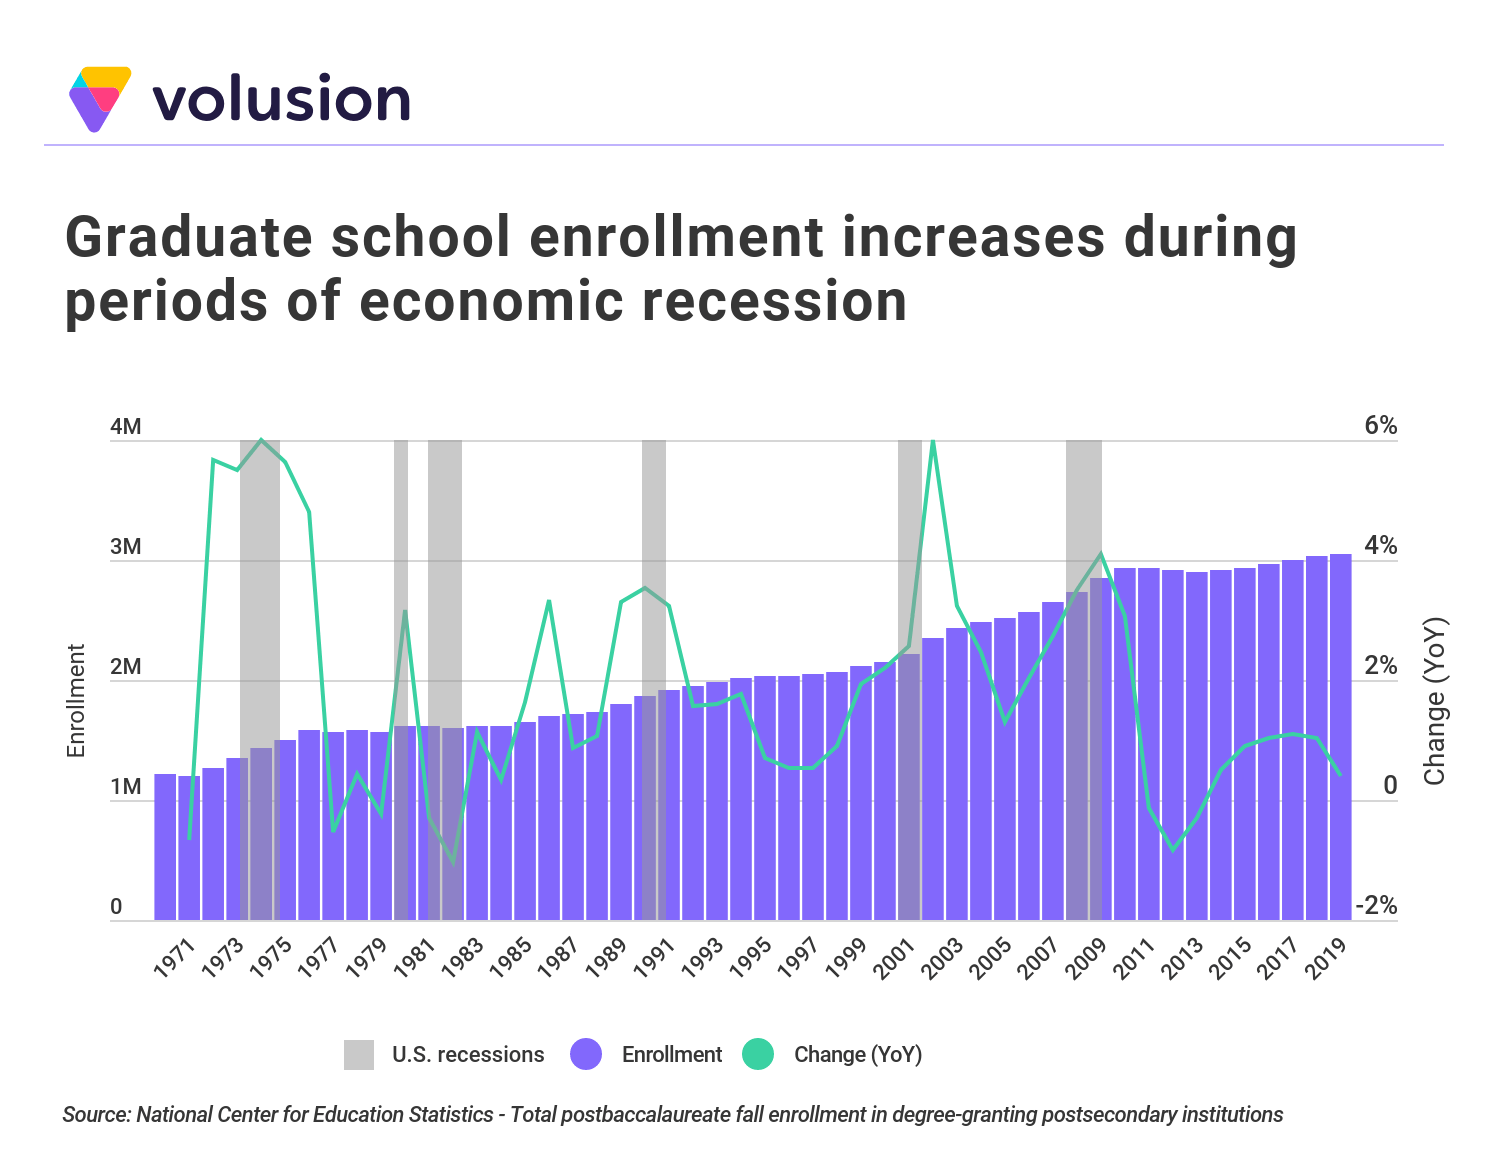 Chart showing that graduate school enrollment increases during periods of economic recession.